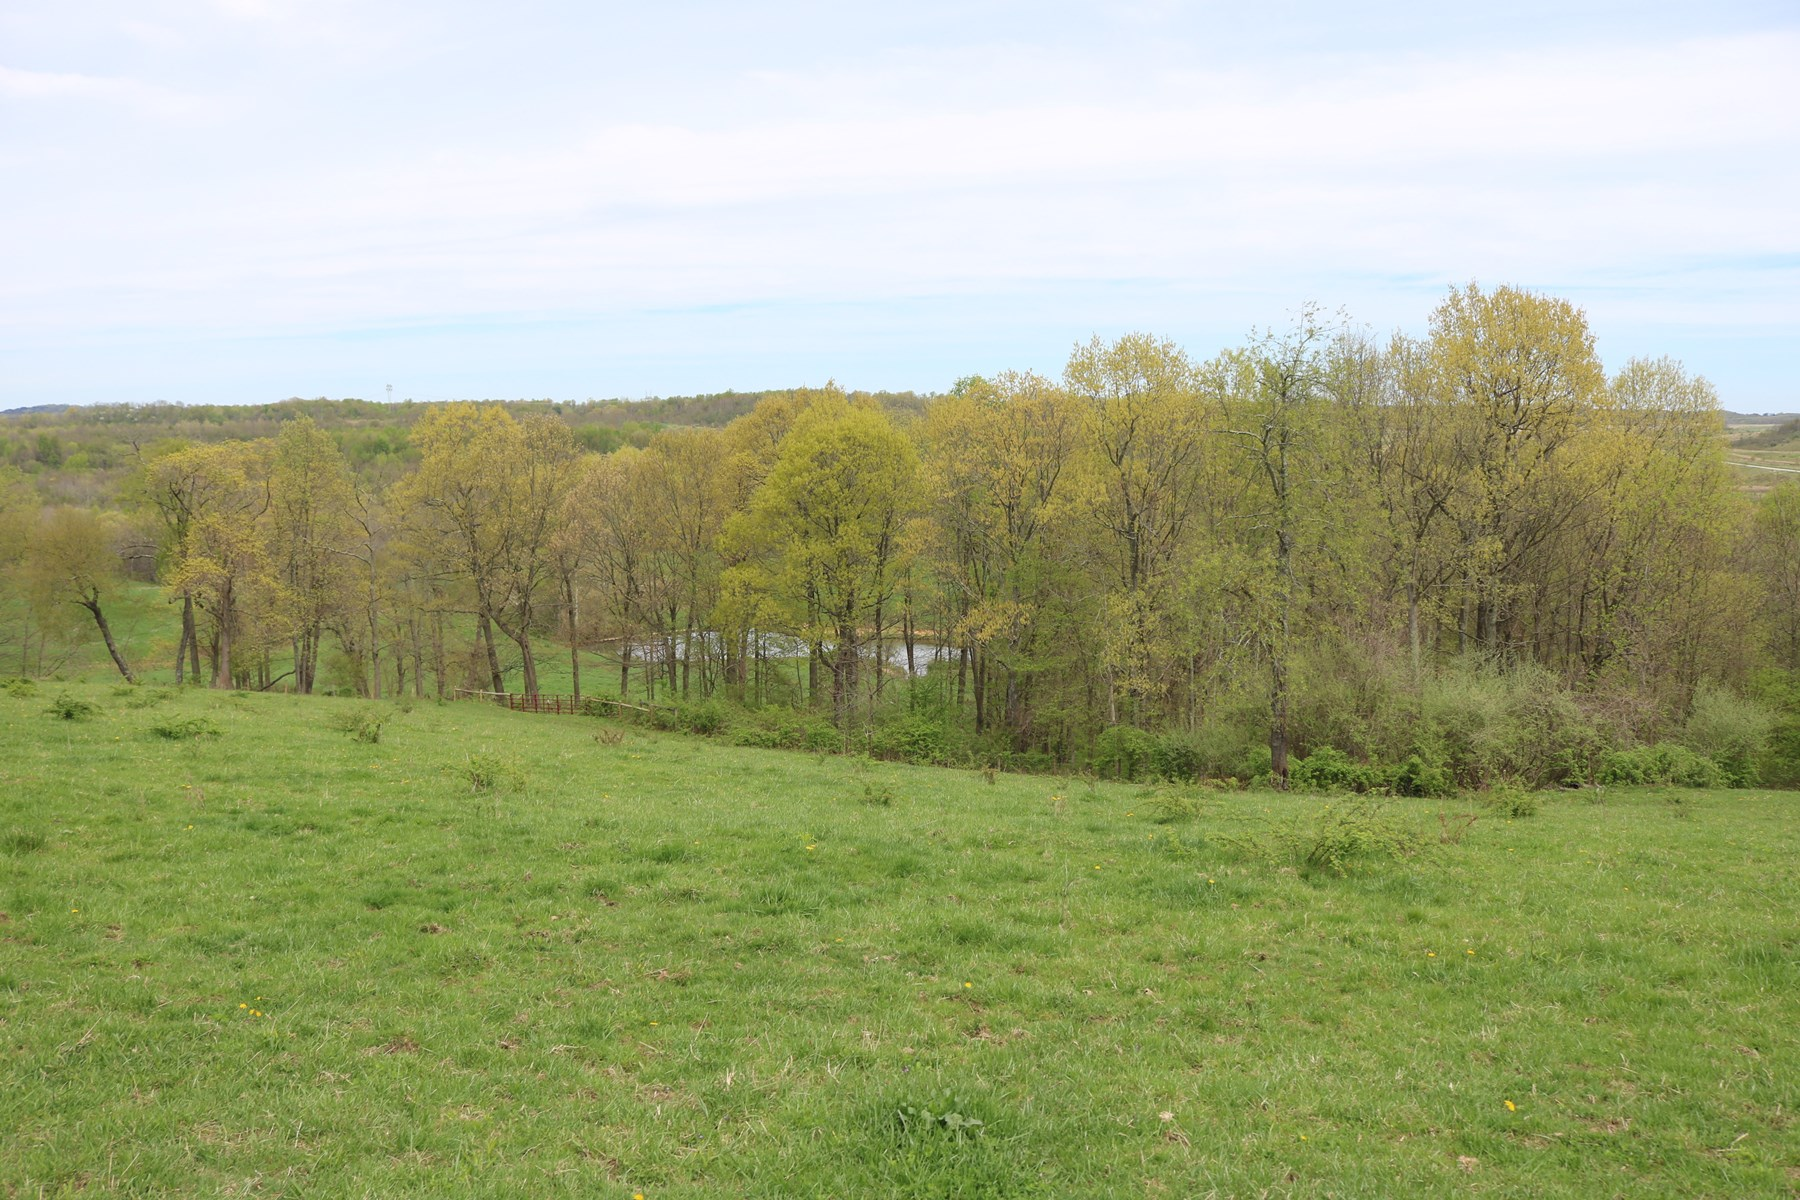 Tract 5 | 54 +/- Acres | Woods/Pond/Pasture | Adjacent to Tri Valley Wildlife Area